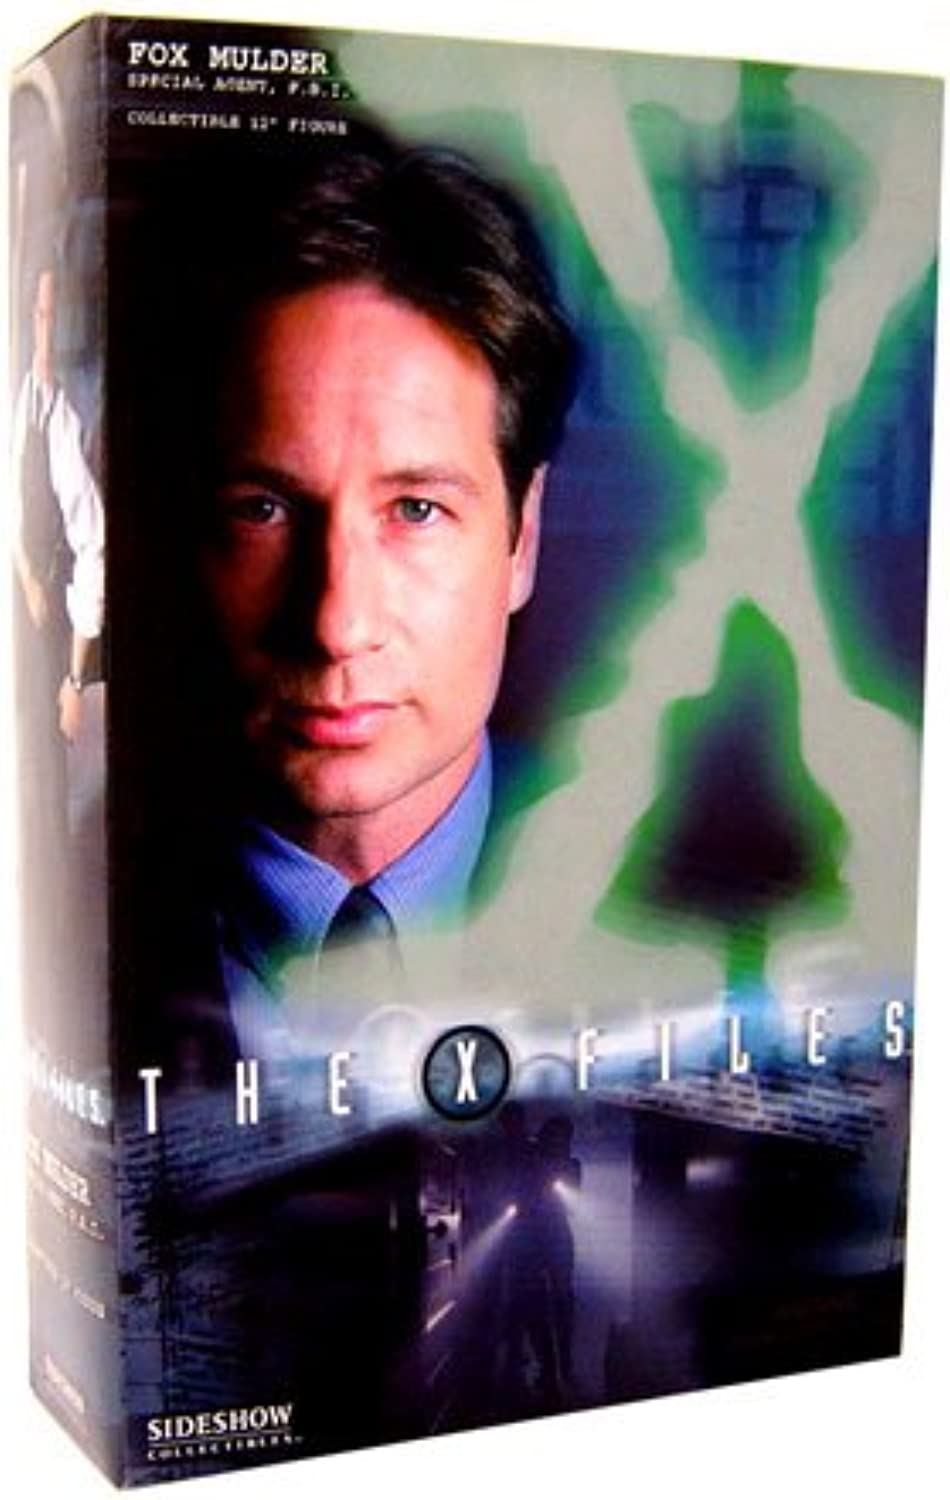 Sideshow Collectibles XFiles Limited Edition 12 Inch Action Figure Home Fox Mulder